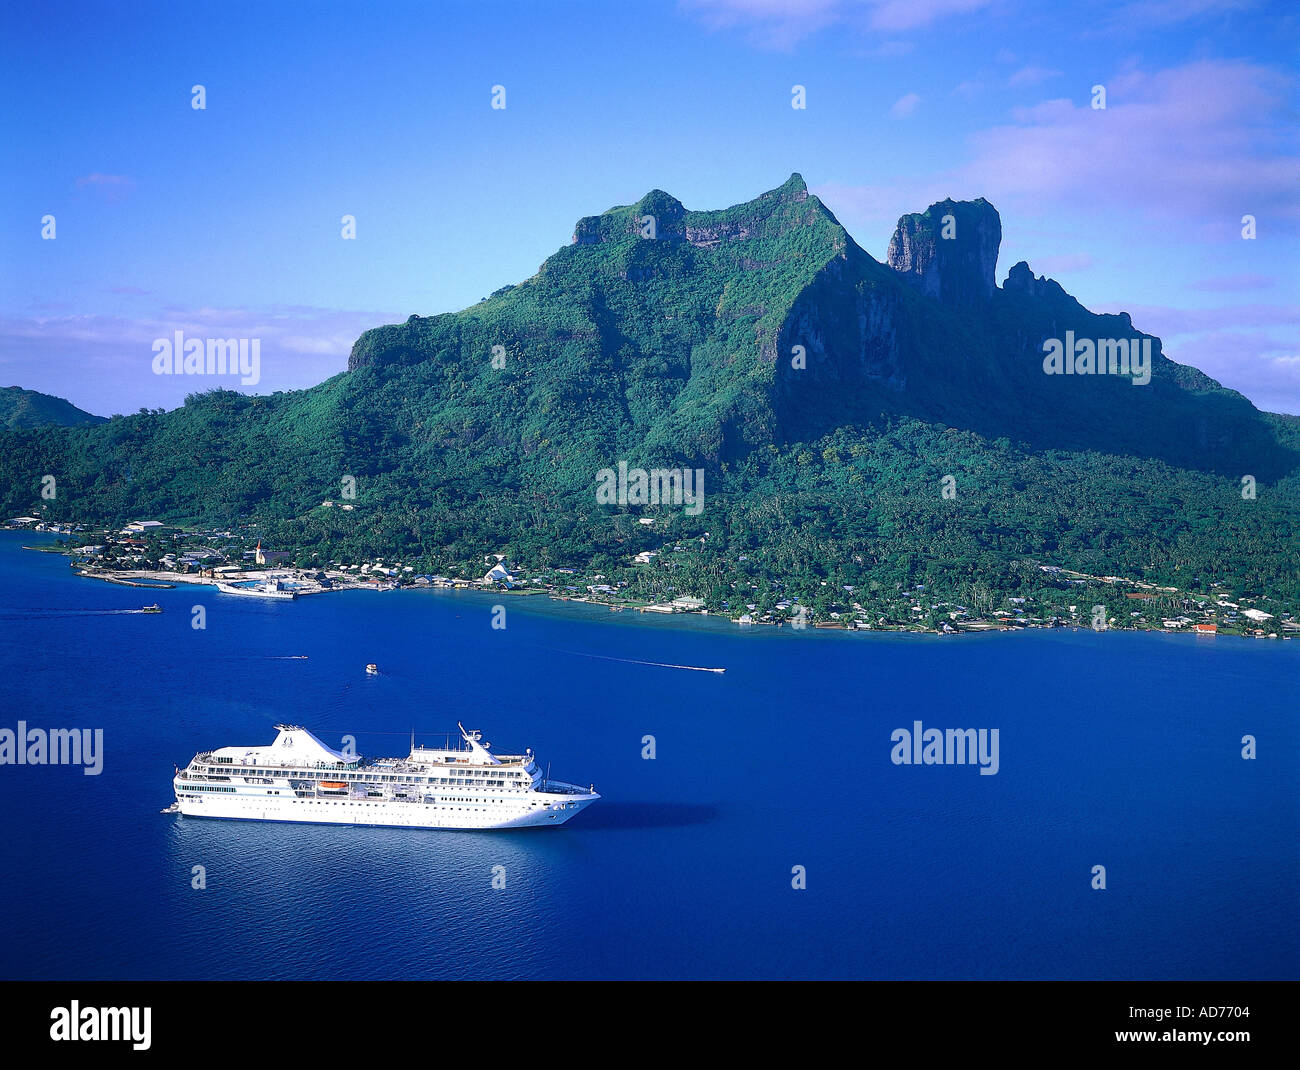 FRENCH POLYNESIA GASTRONOMIC CRUISE ON M S PAUL GAUGUIN AERIAL OF - Ms paul gauguin